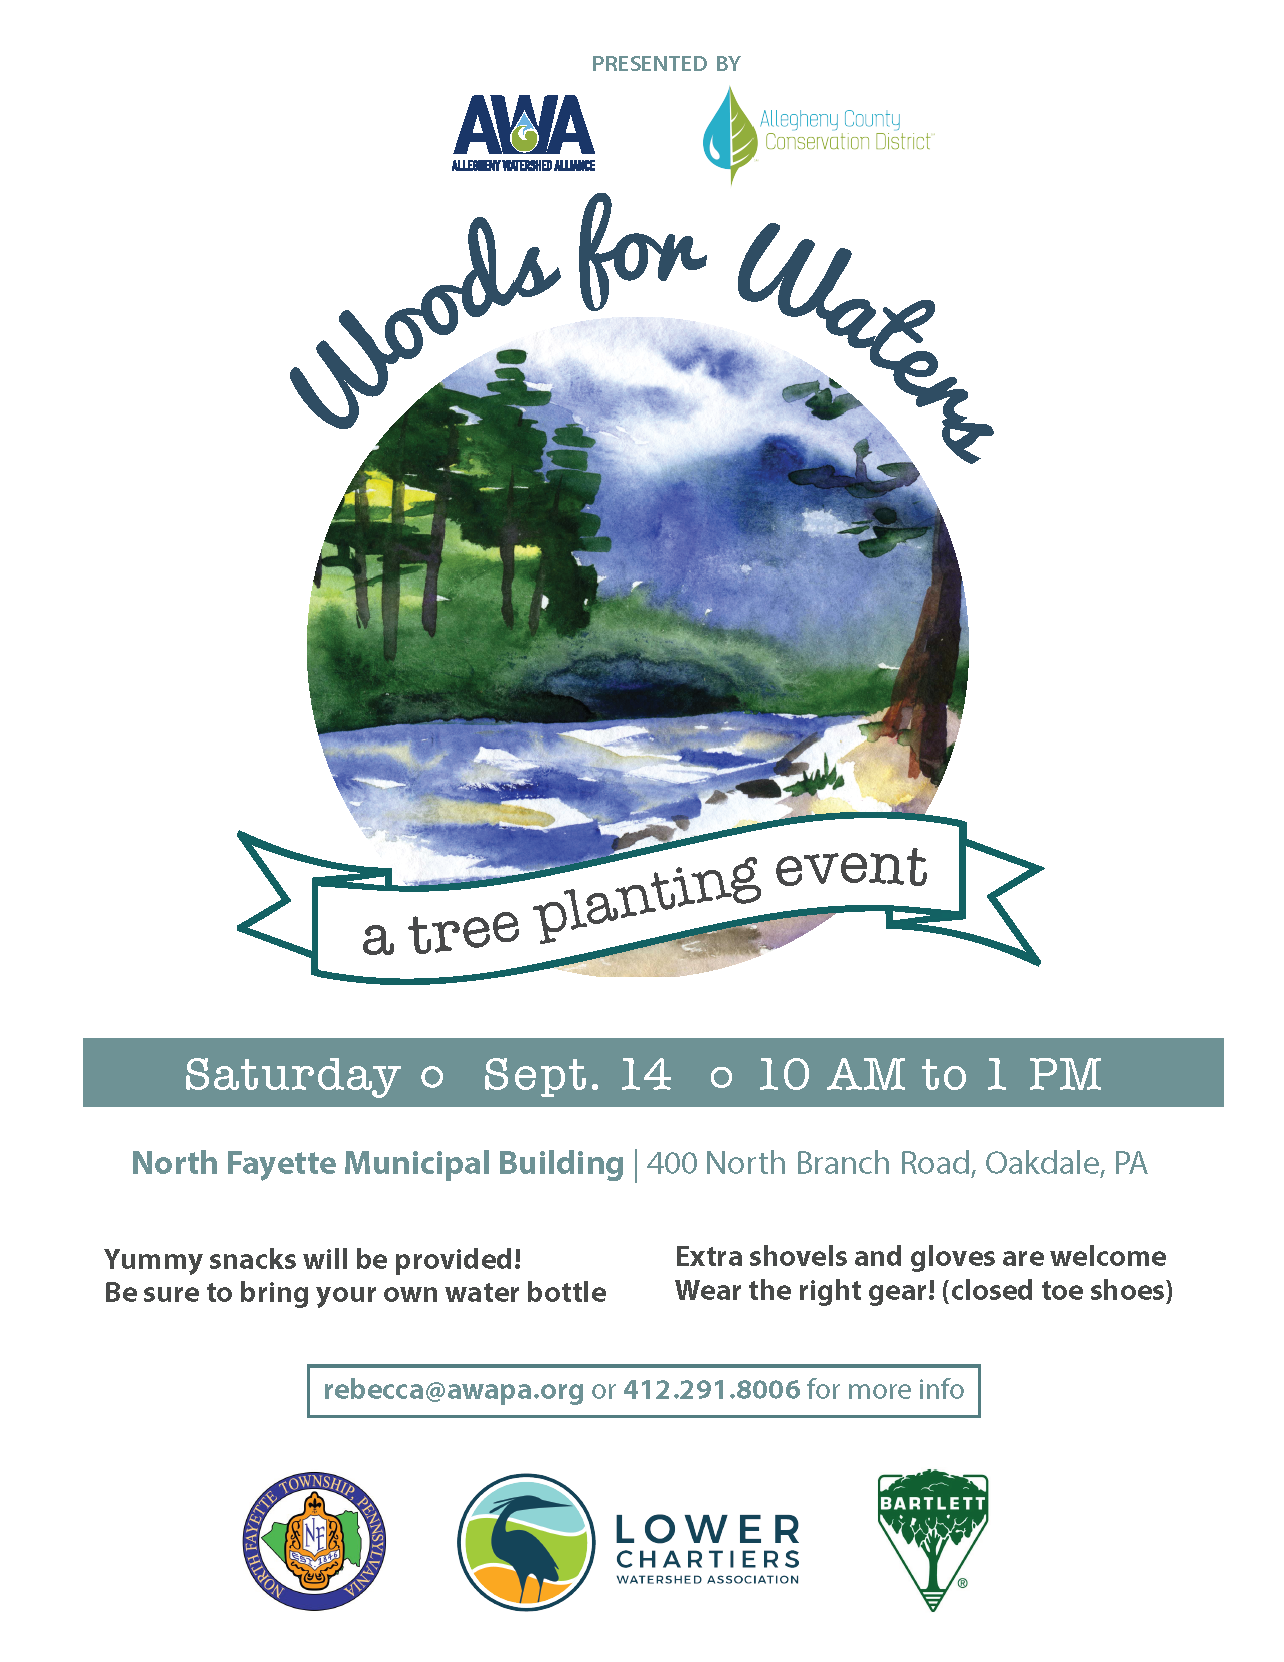 Flyer containing information for the North Fayette Township volunteer Tree Planting event taking pla